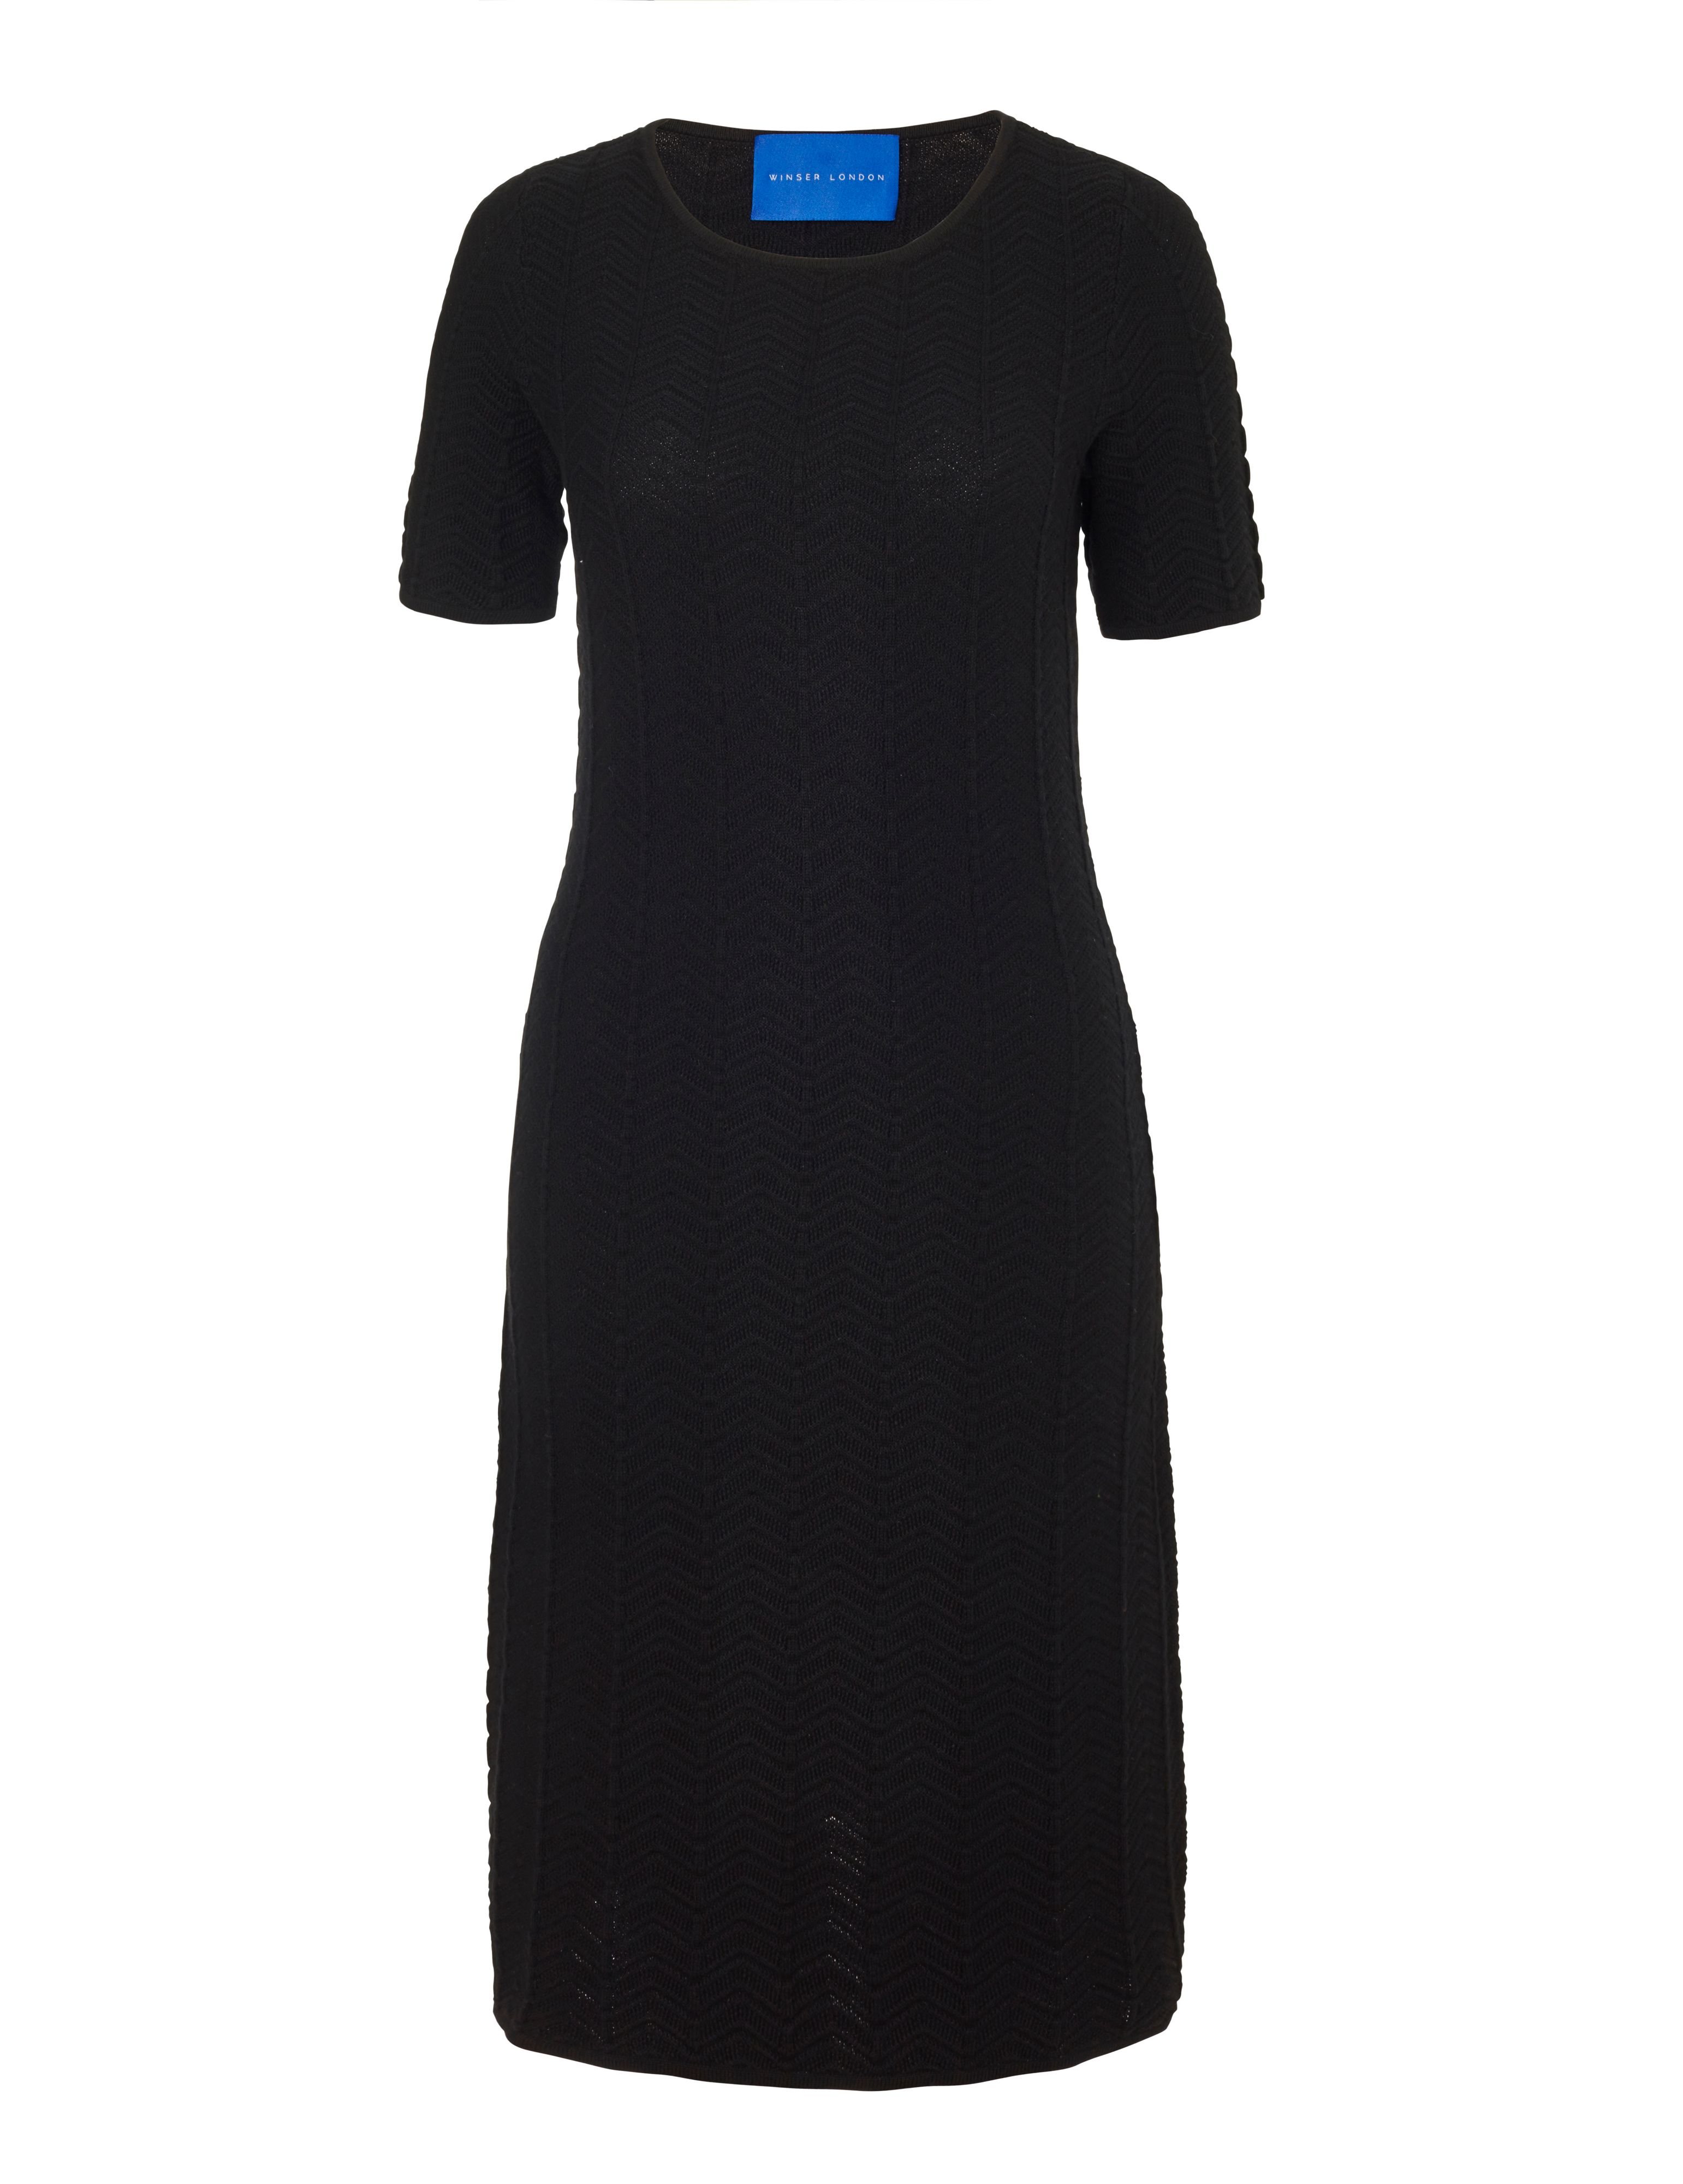 Winser London Cotton Chevron Dress, Black